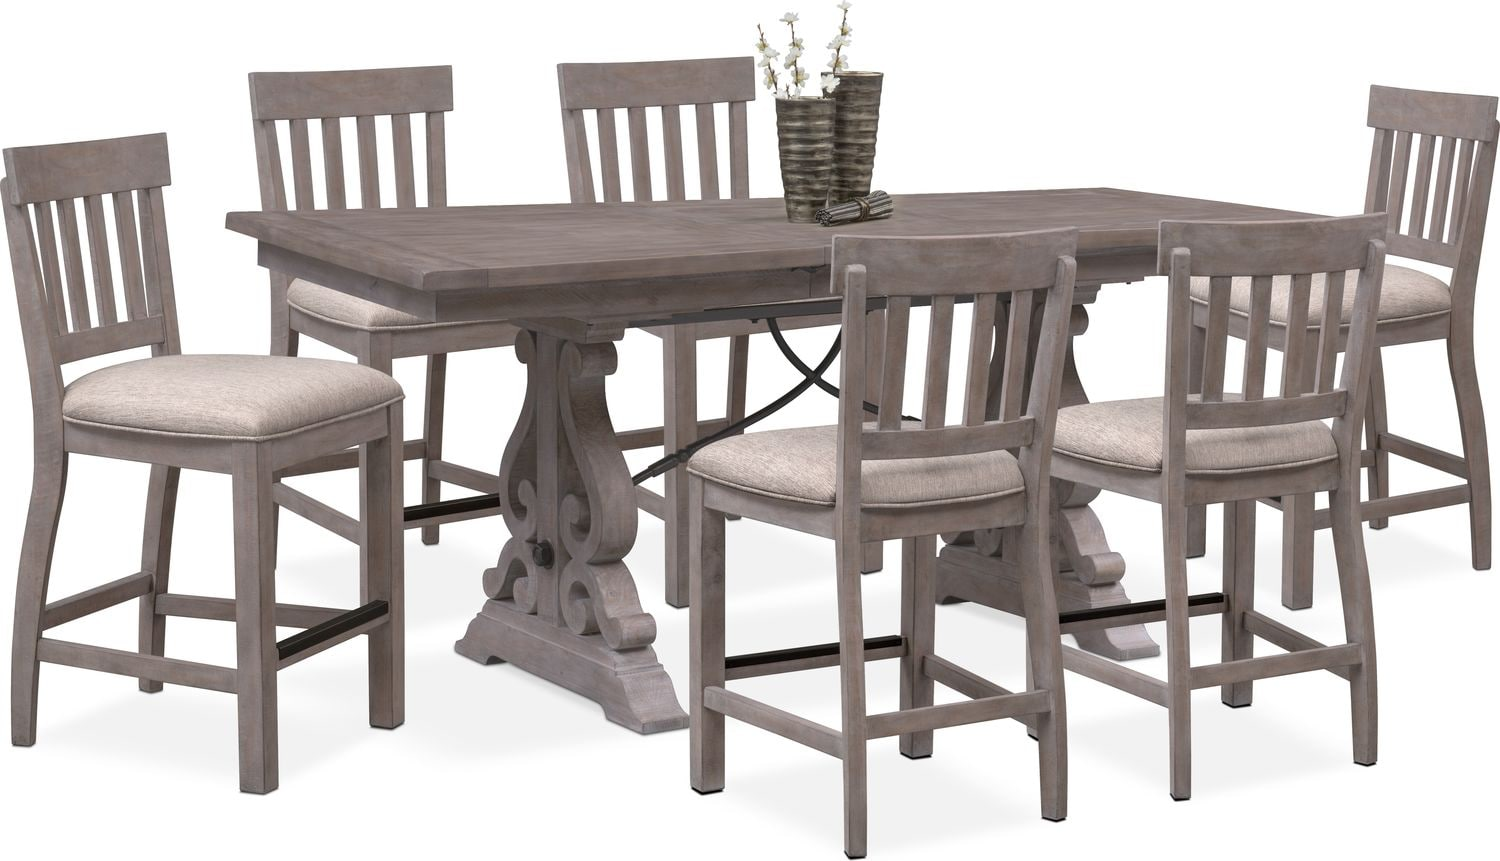 Ordinaire Charthouse Counter Height Dining Table And 6 Stools   Gray